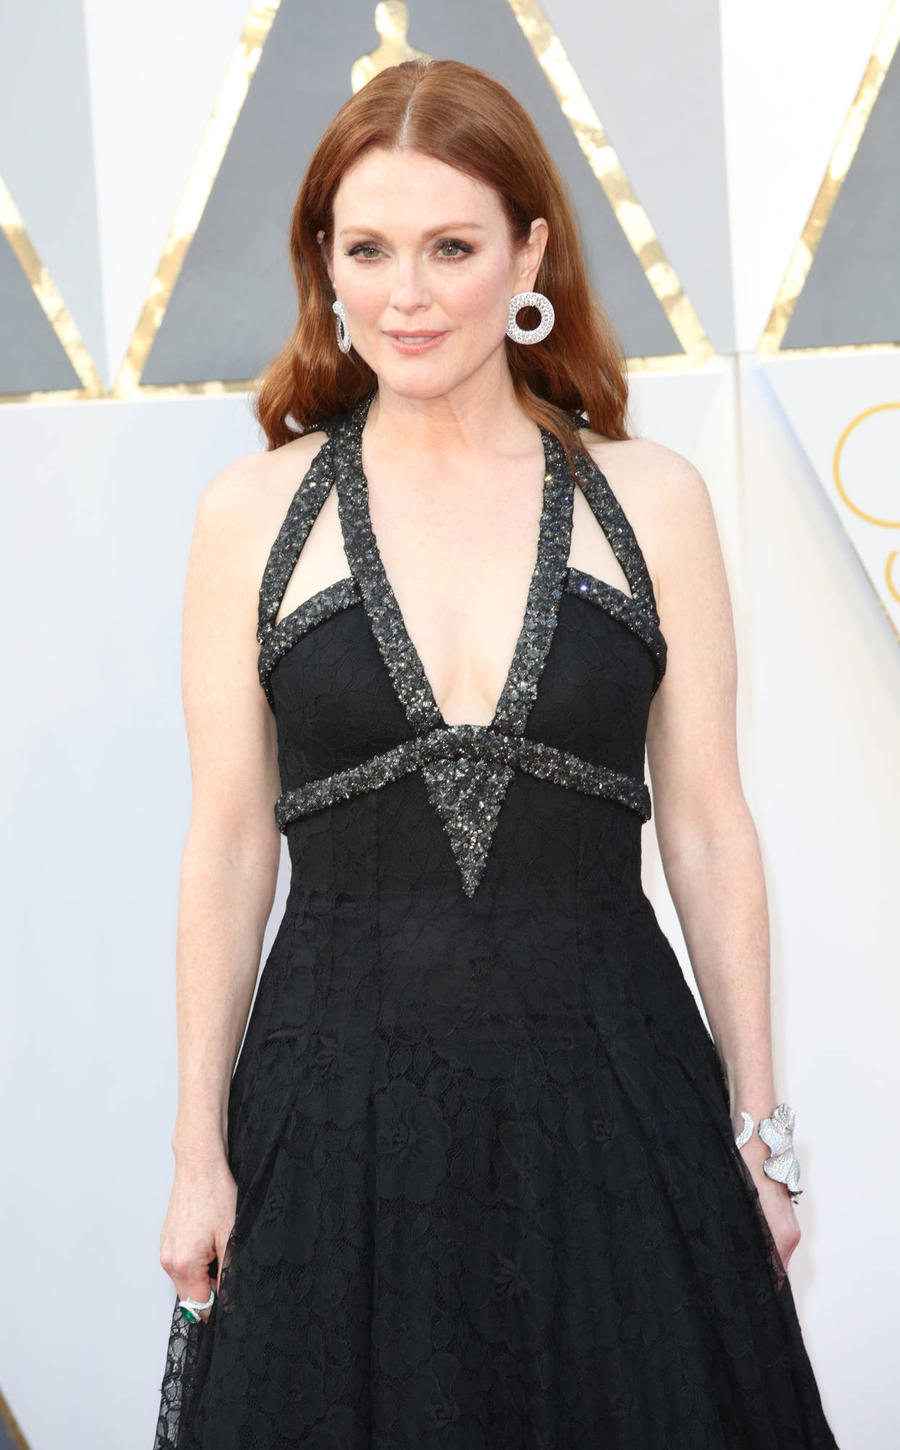 Julianne Moore Joins Gun Violence Protest